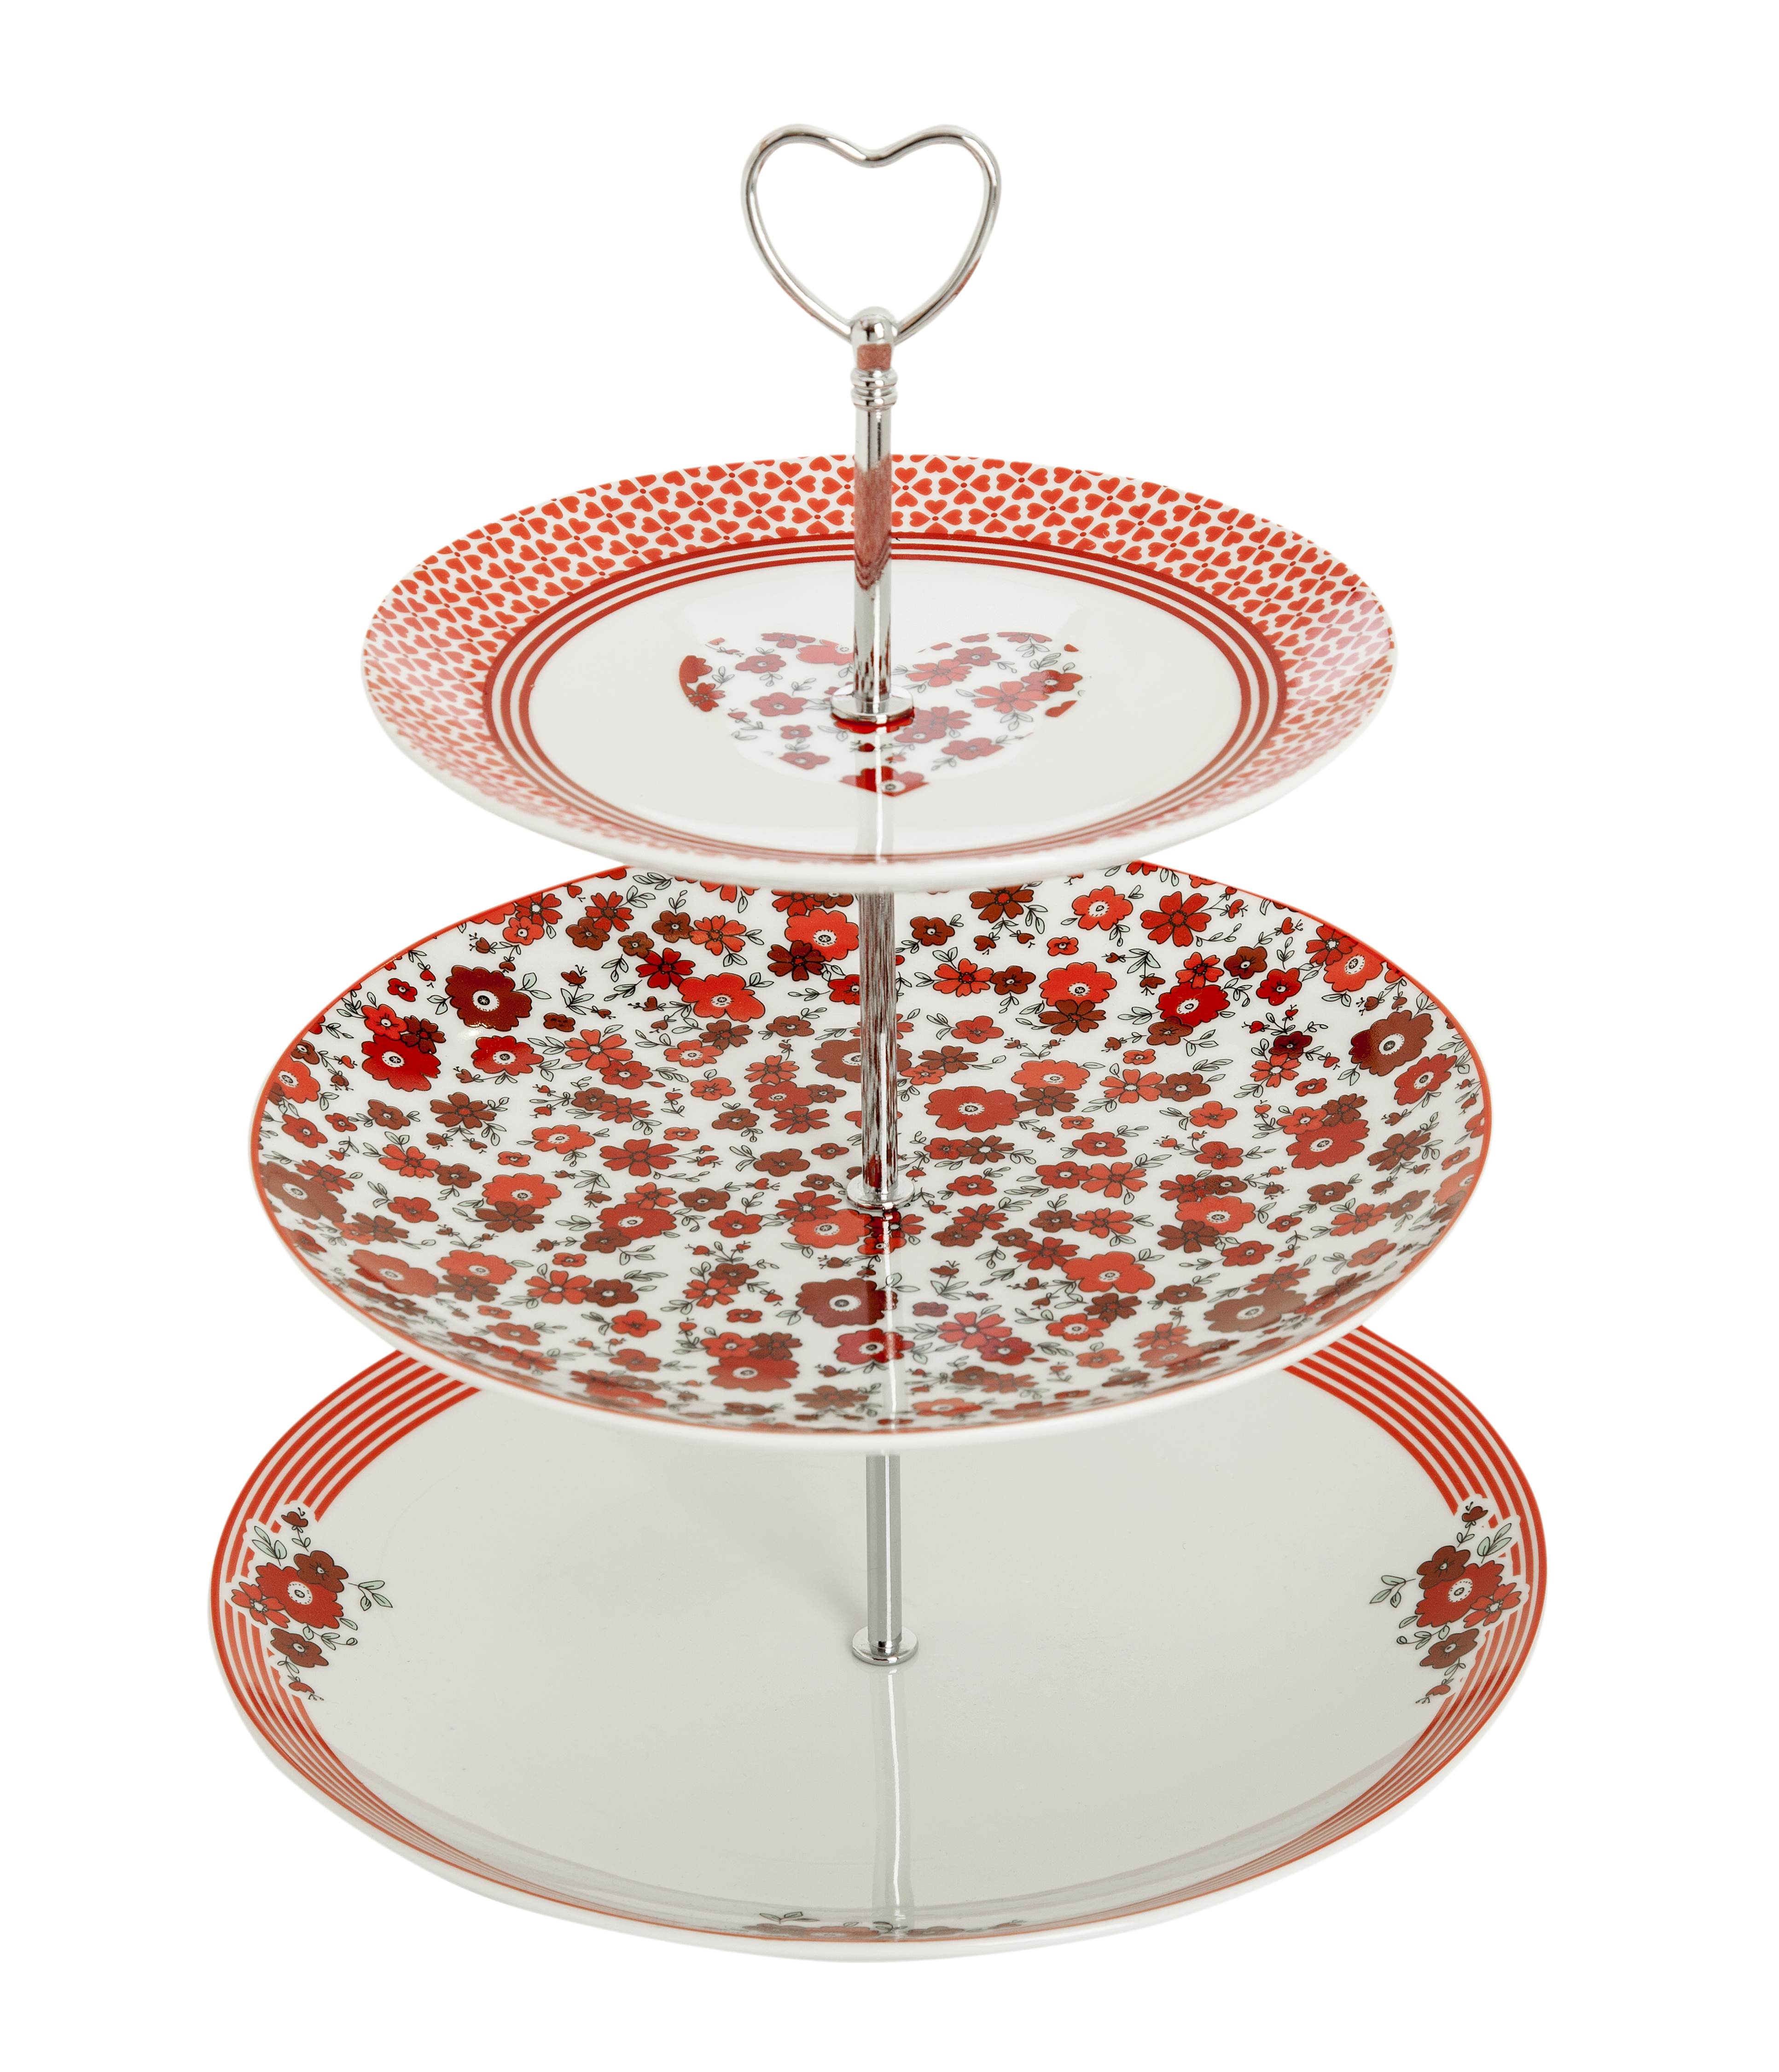 Ashley Thomas Cake Stand